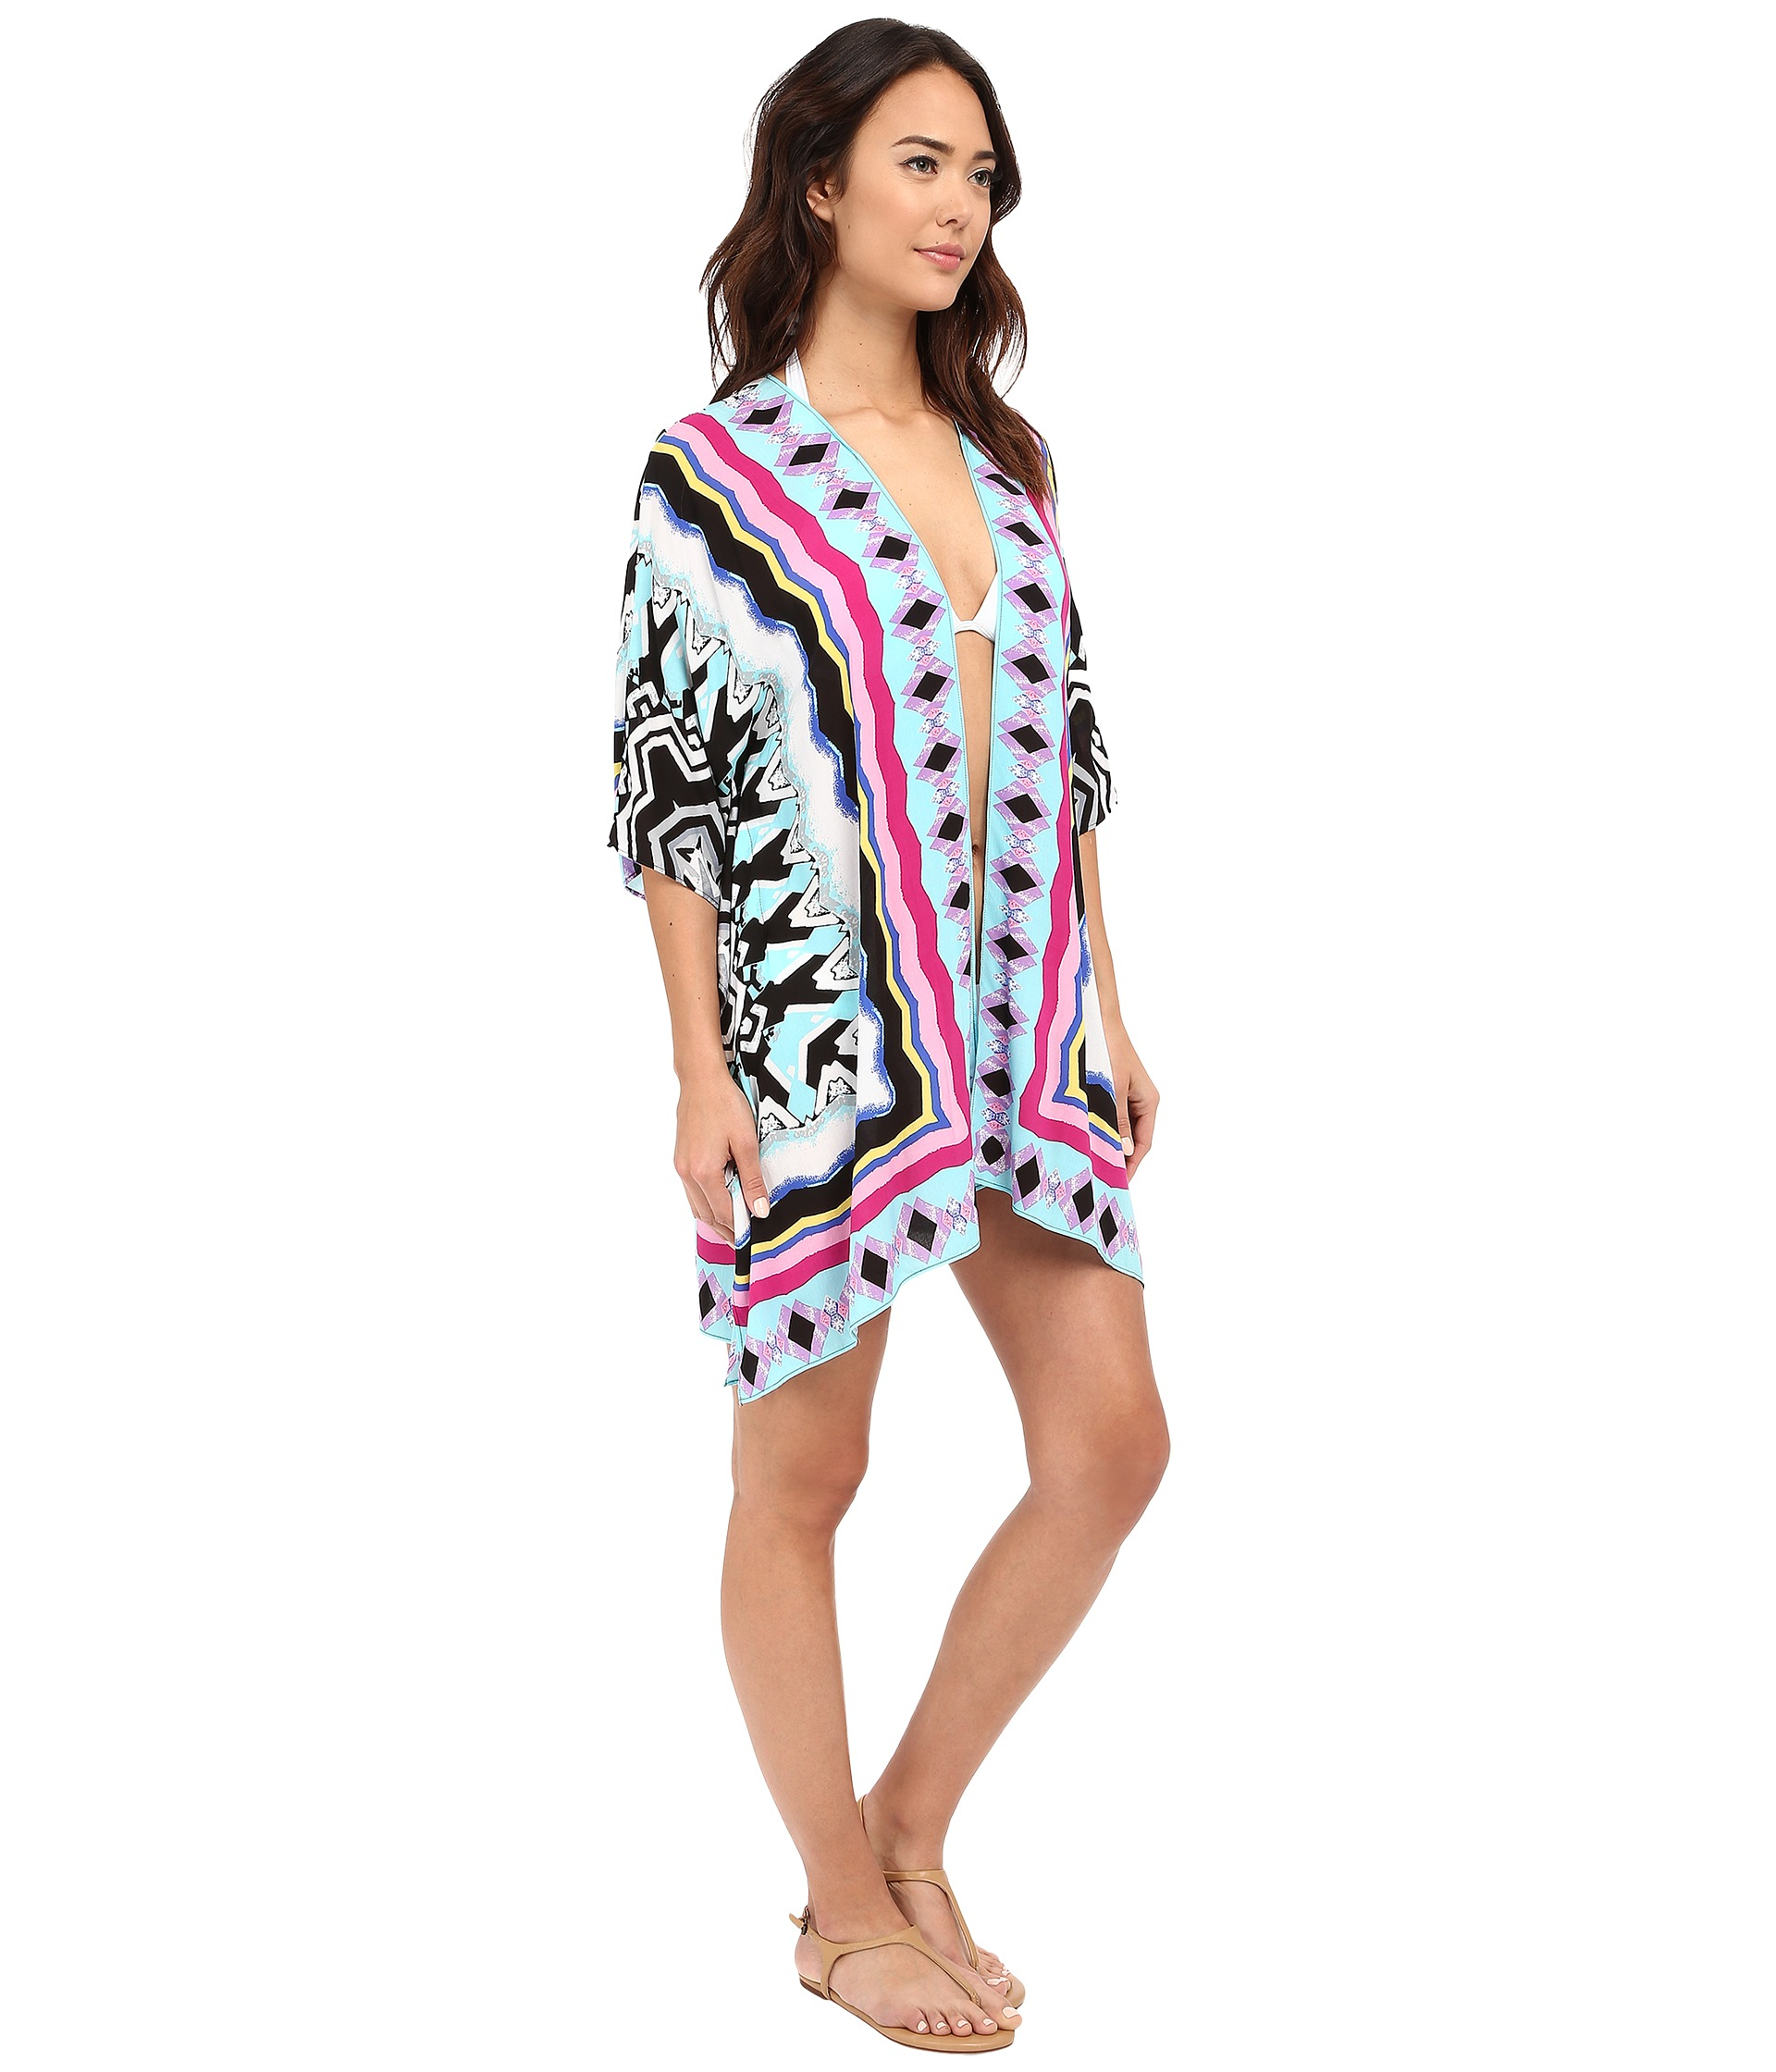 6fb92c47bae76 Lyst - La Blanca Center Focus Kimono Cover-up in Blue